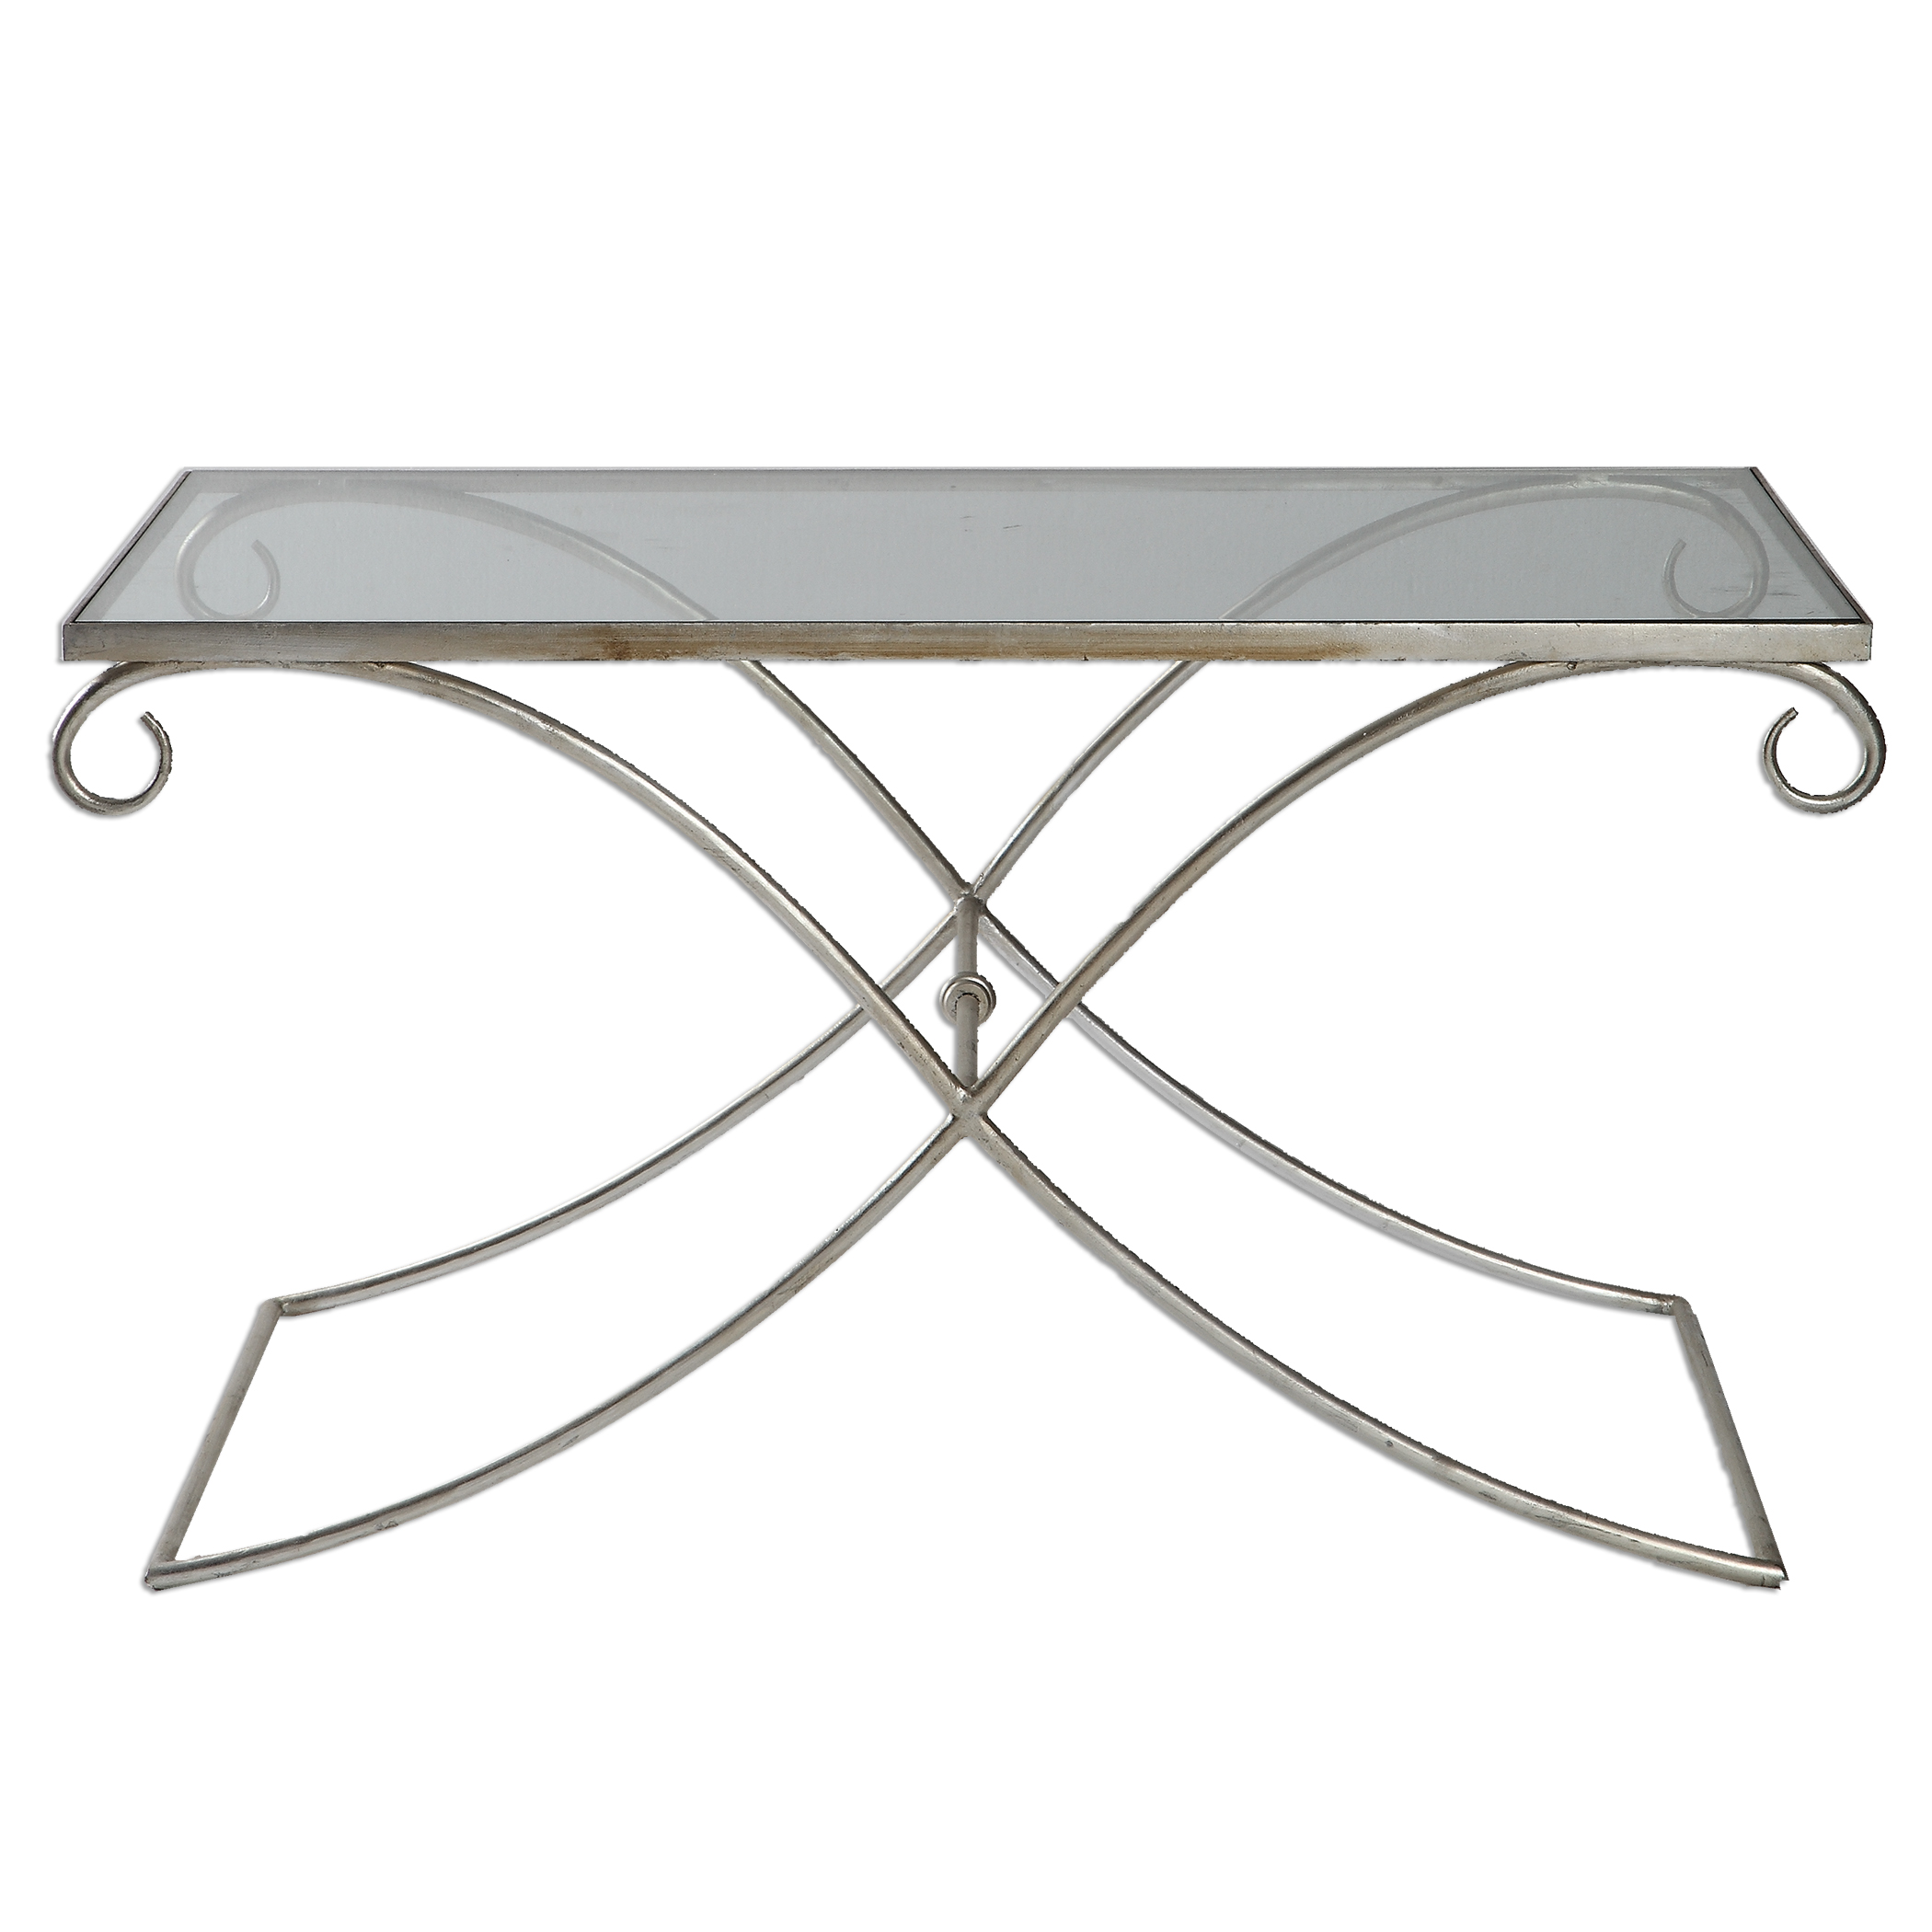 Uttermost Accent Furniture Lamani Glass Coffee Table - Item Number: 24547